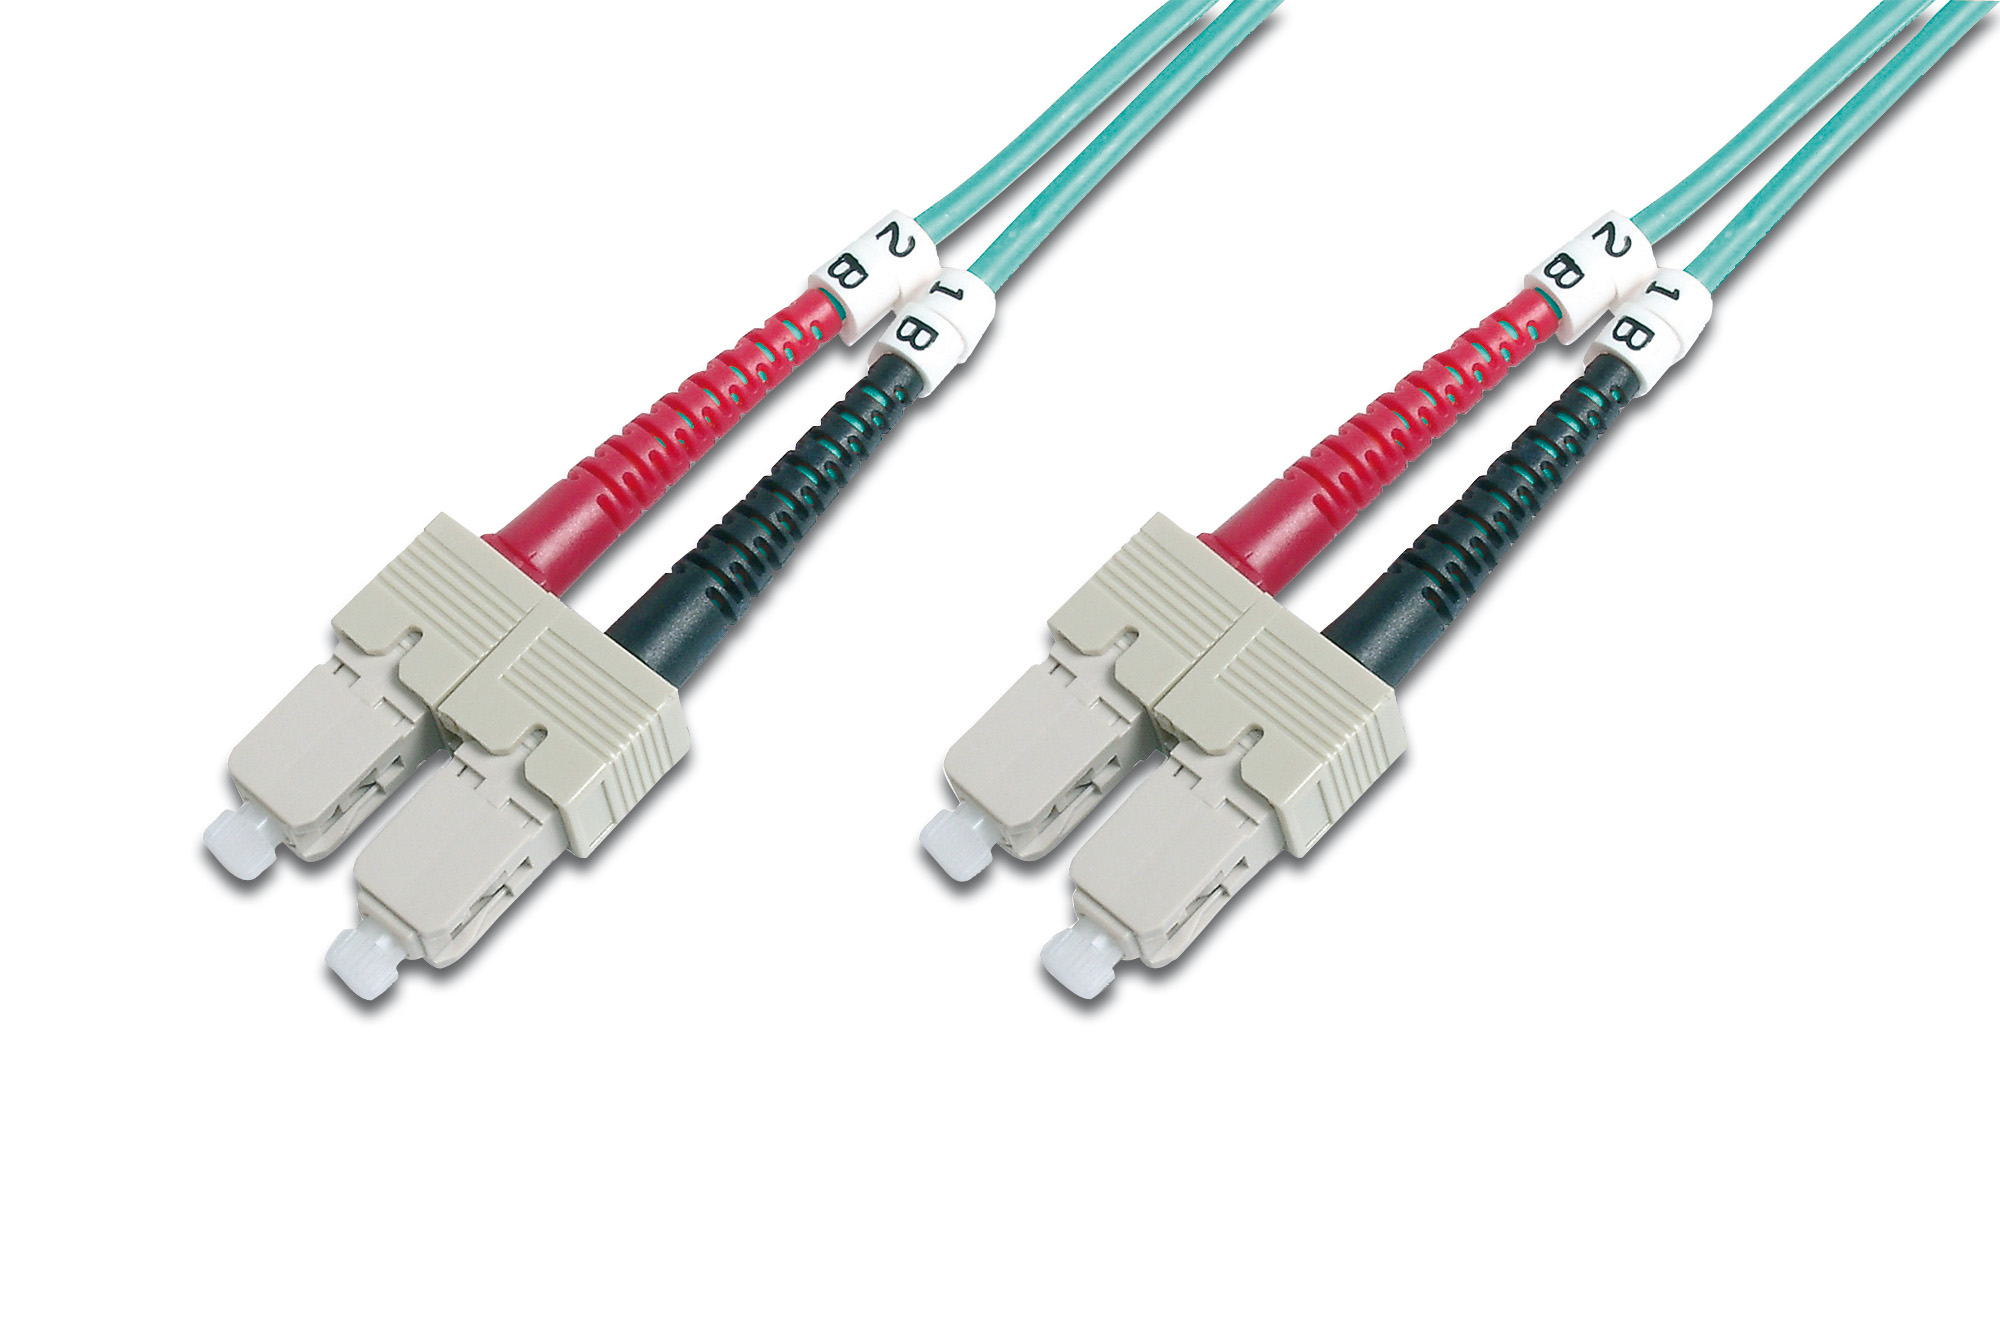 Fiber Optic Patch Cord, SC to SC Multimode 50/125 µ, Duplex Length 10m, Class OM3